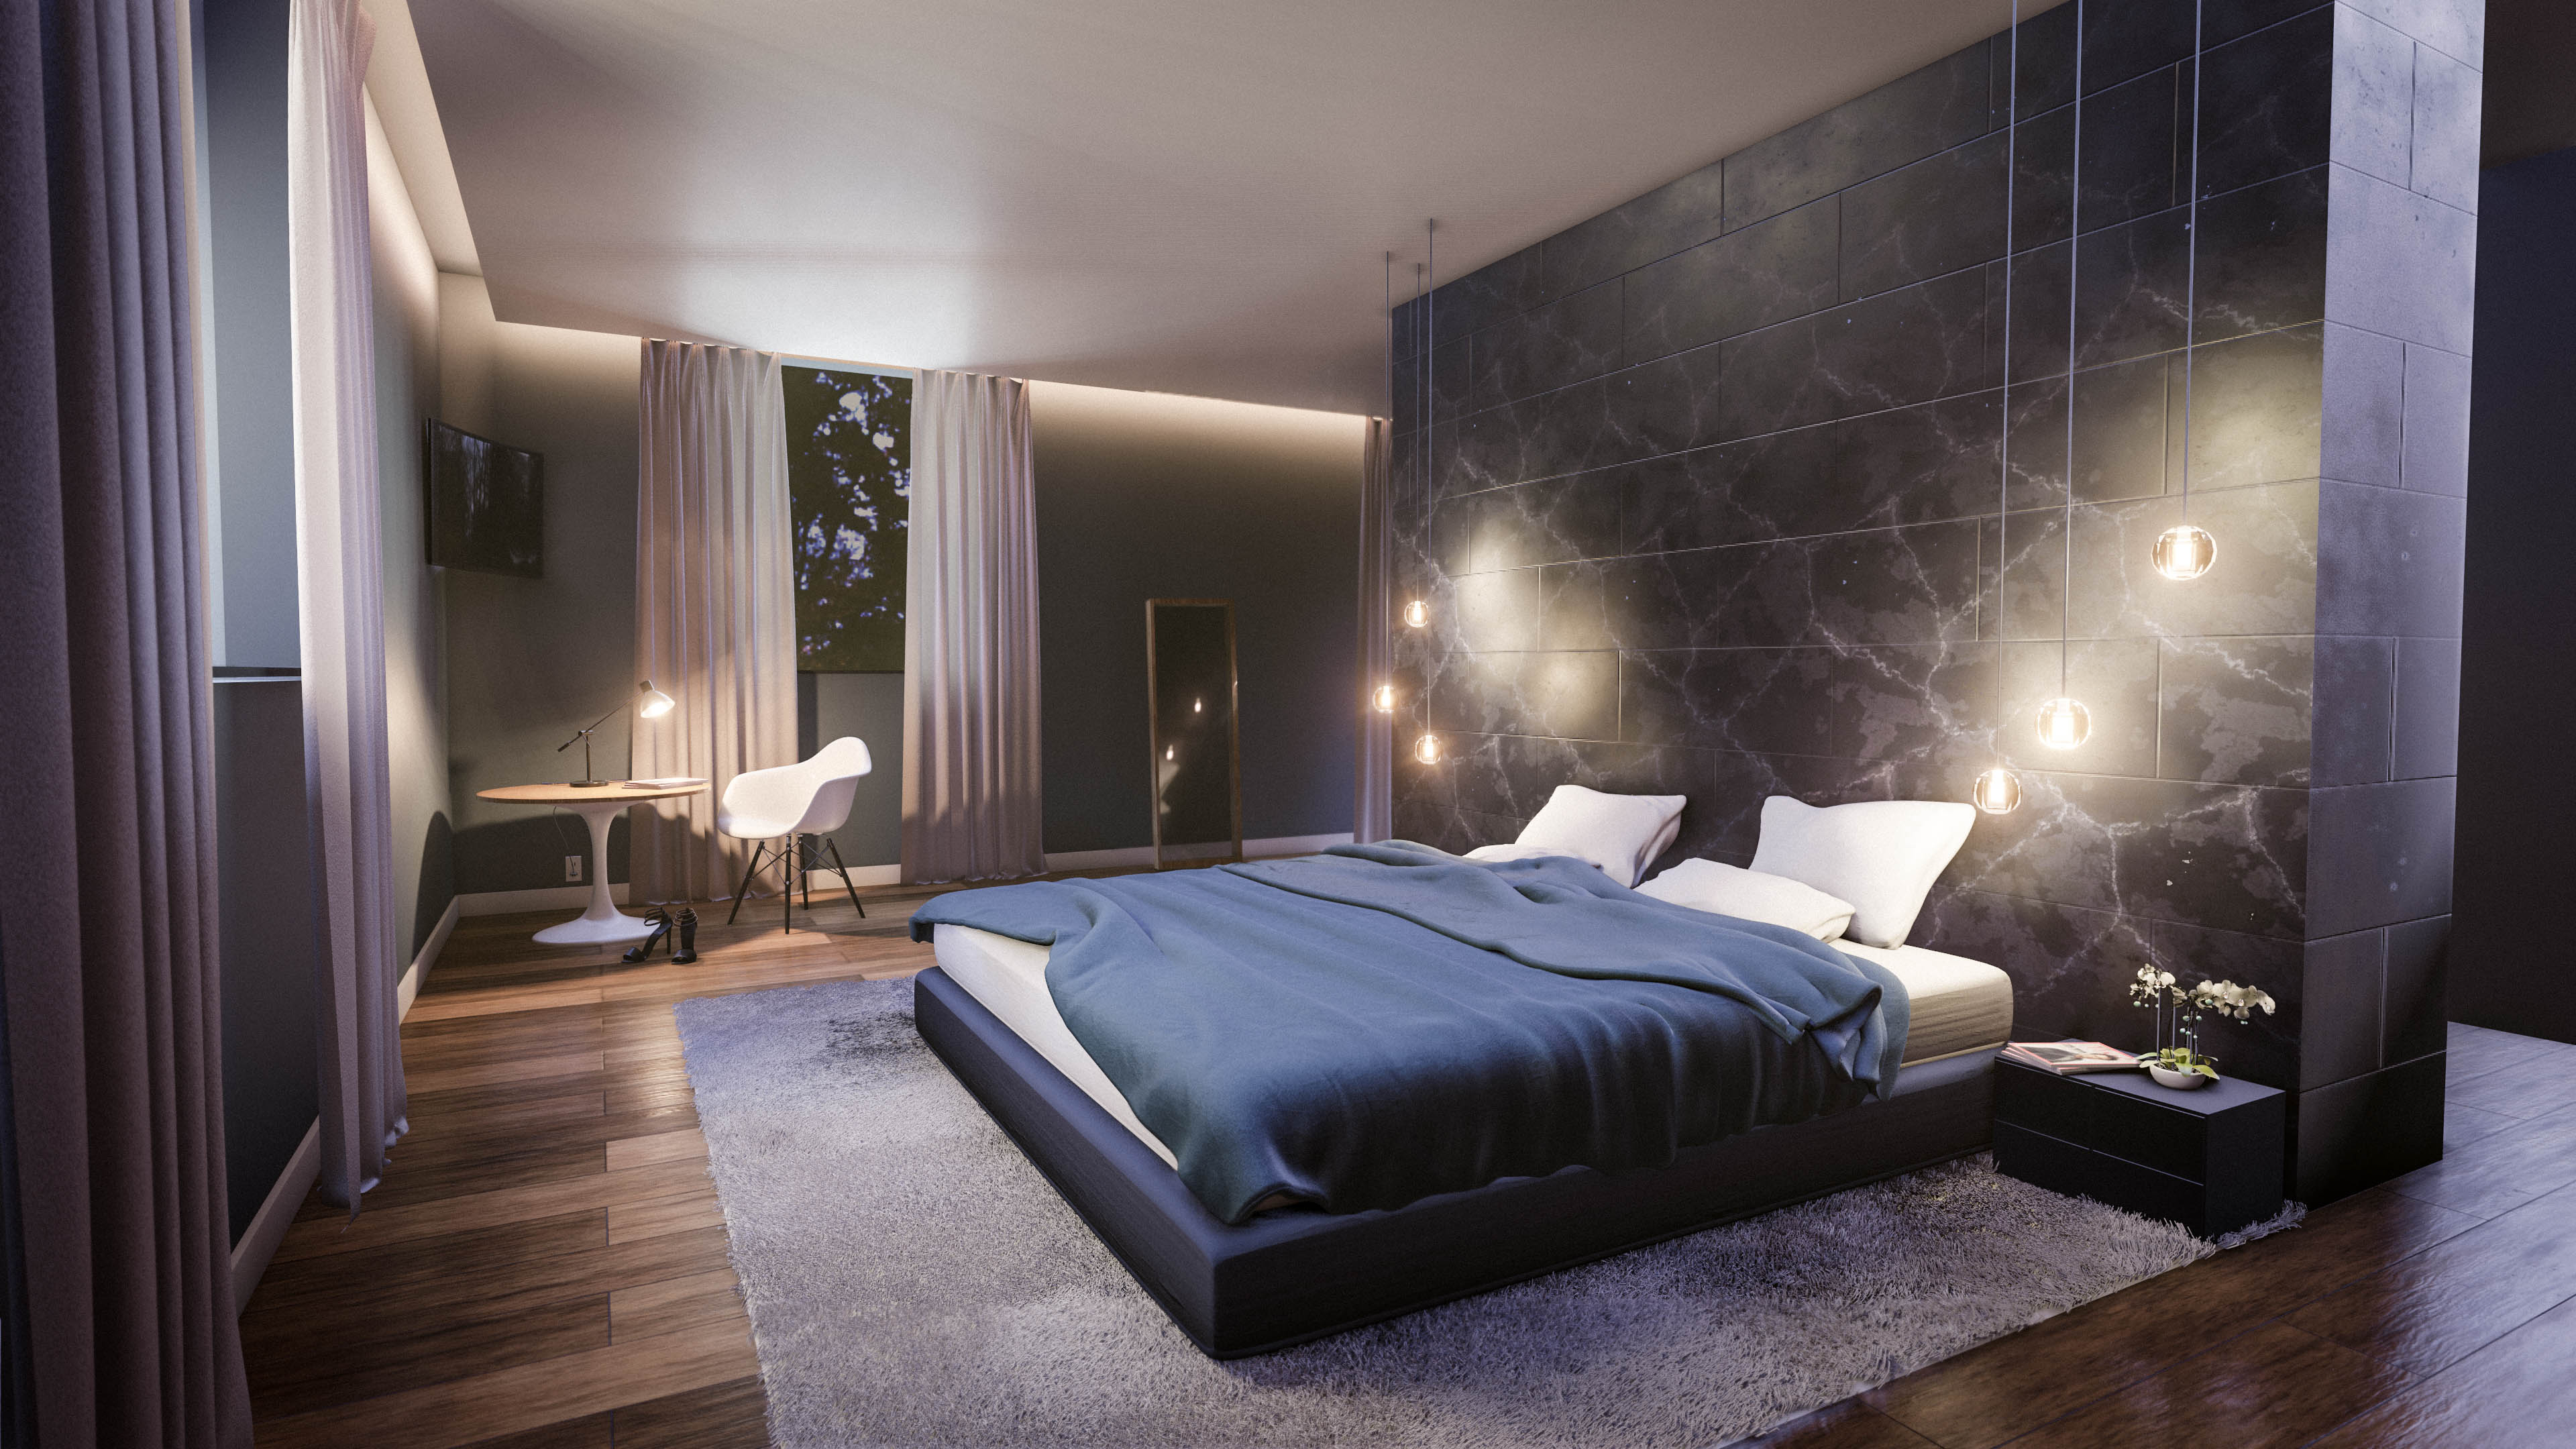 create a modern bedroom interior in blender in 35 minutes rh blendernation com